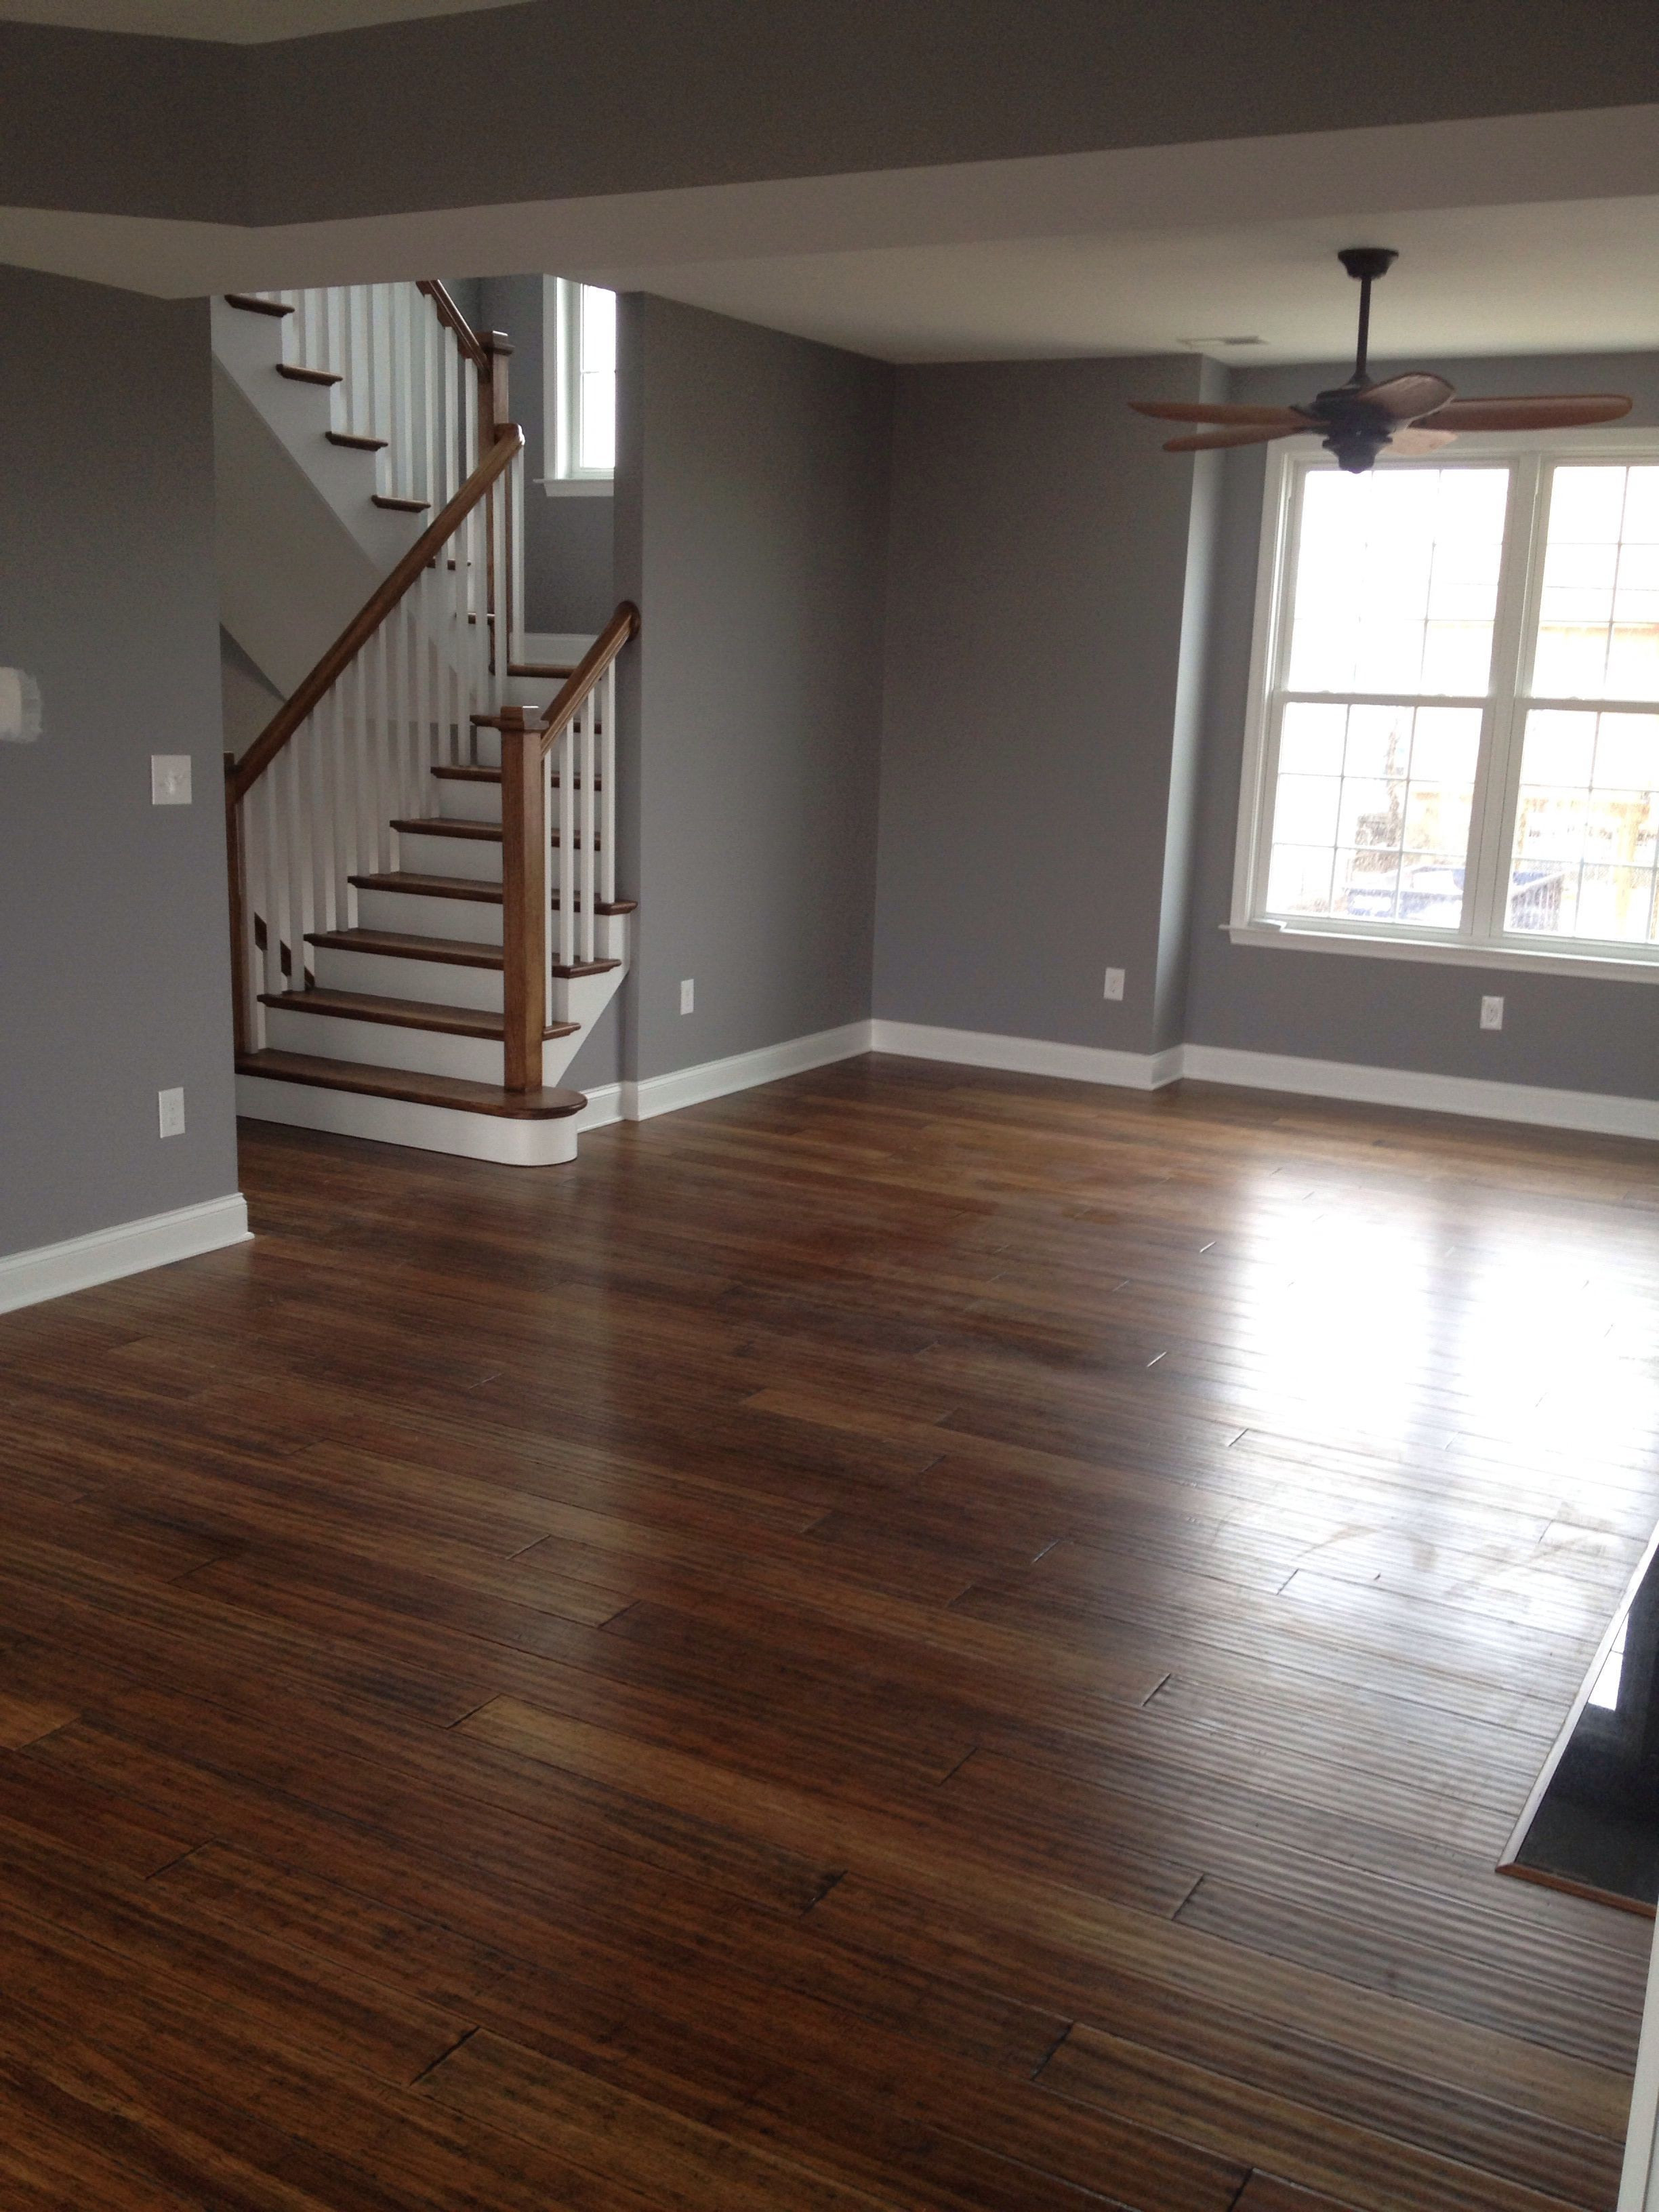 25 Ideal Kahrs Hardwood Flooring Prices 2021 free download kahrs hardwood flooring prices of 18 new bamboo floors pics dizpos com in bamboo floors best of bamboo wainscoting 0d photograph of 18 new bamboo floors pics